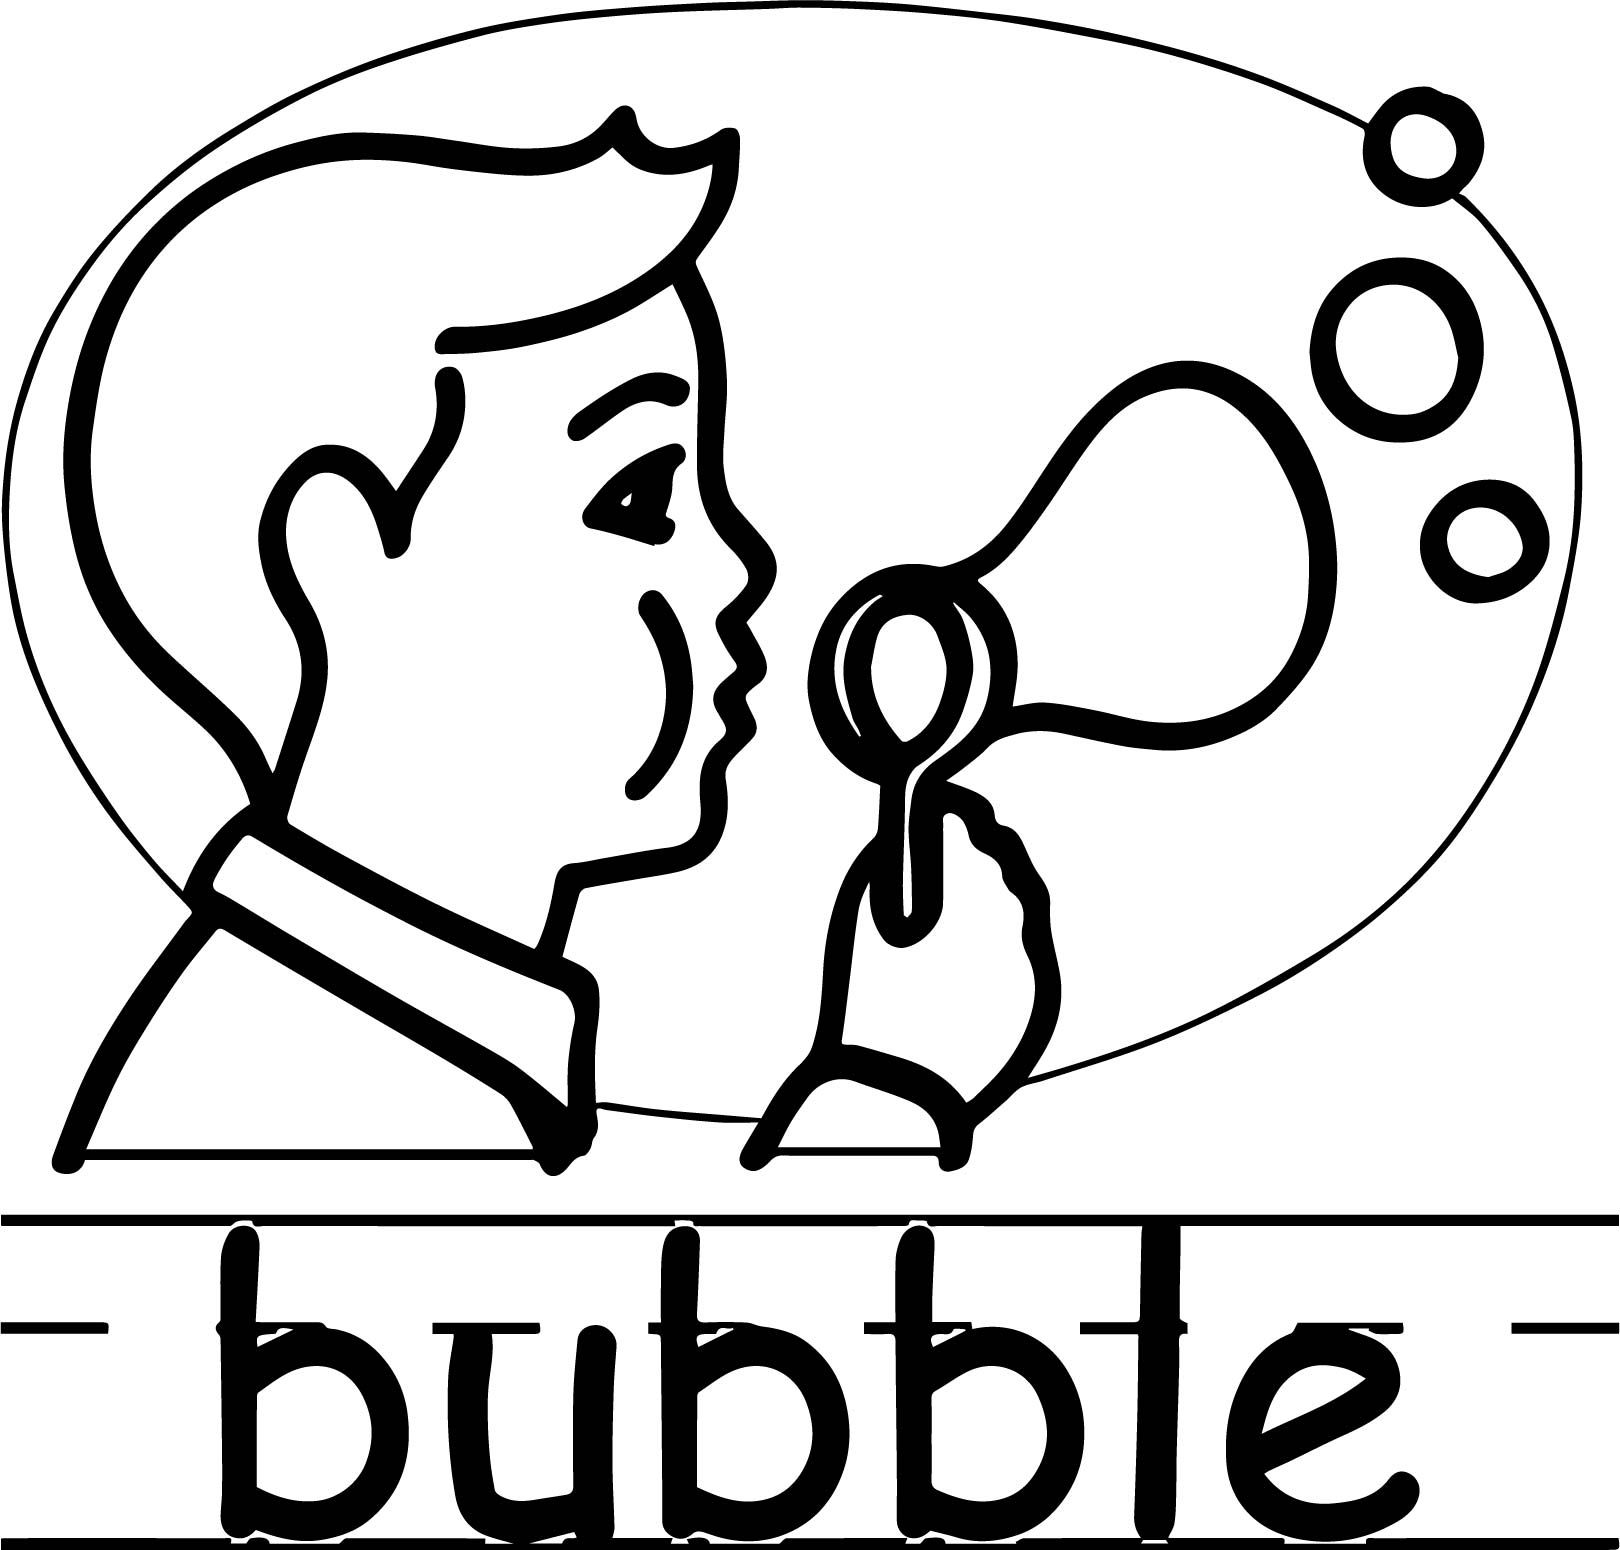 Cool Bubble Abc Teach Coloring Page